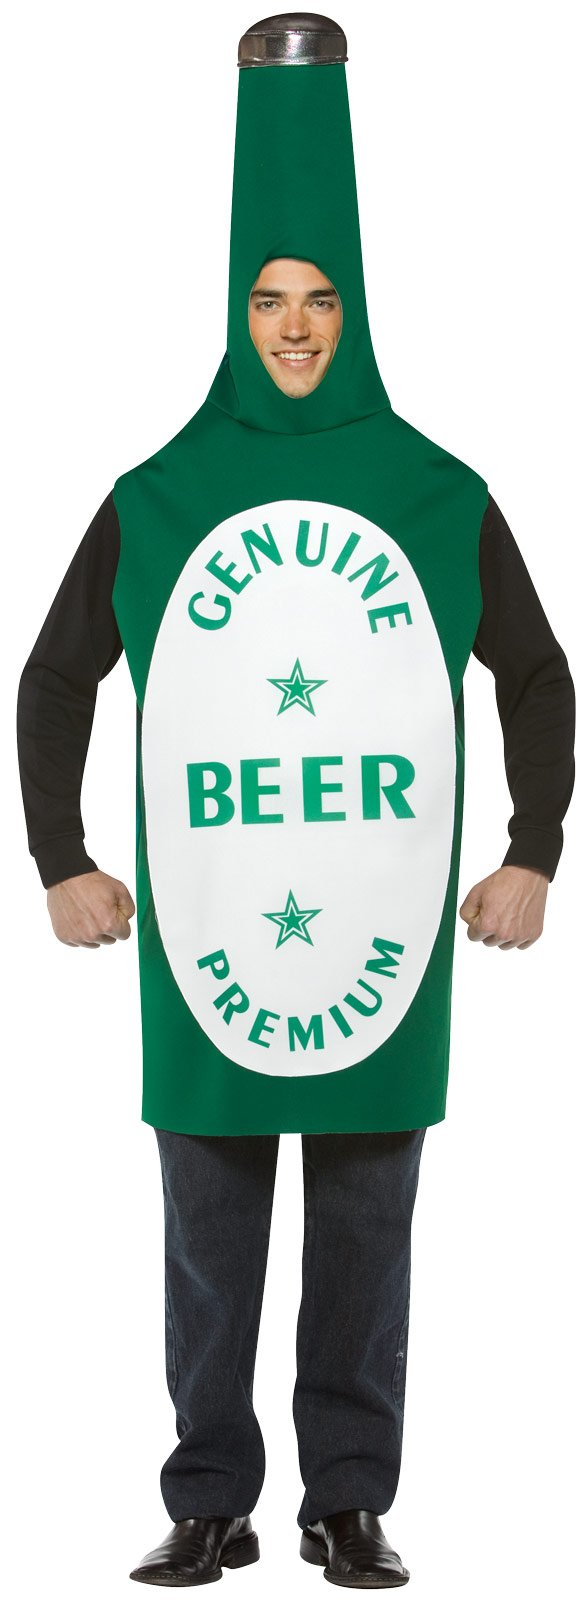 Beer Bottle Costume